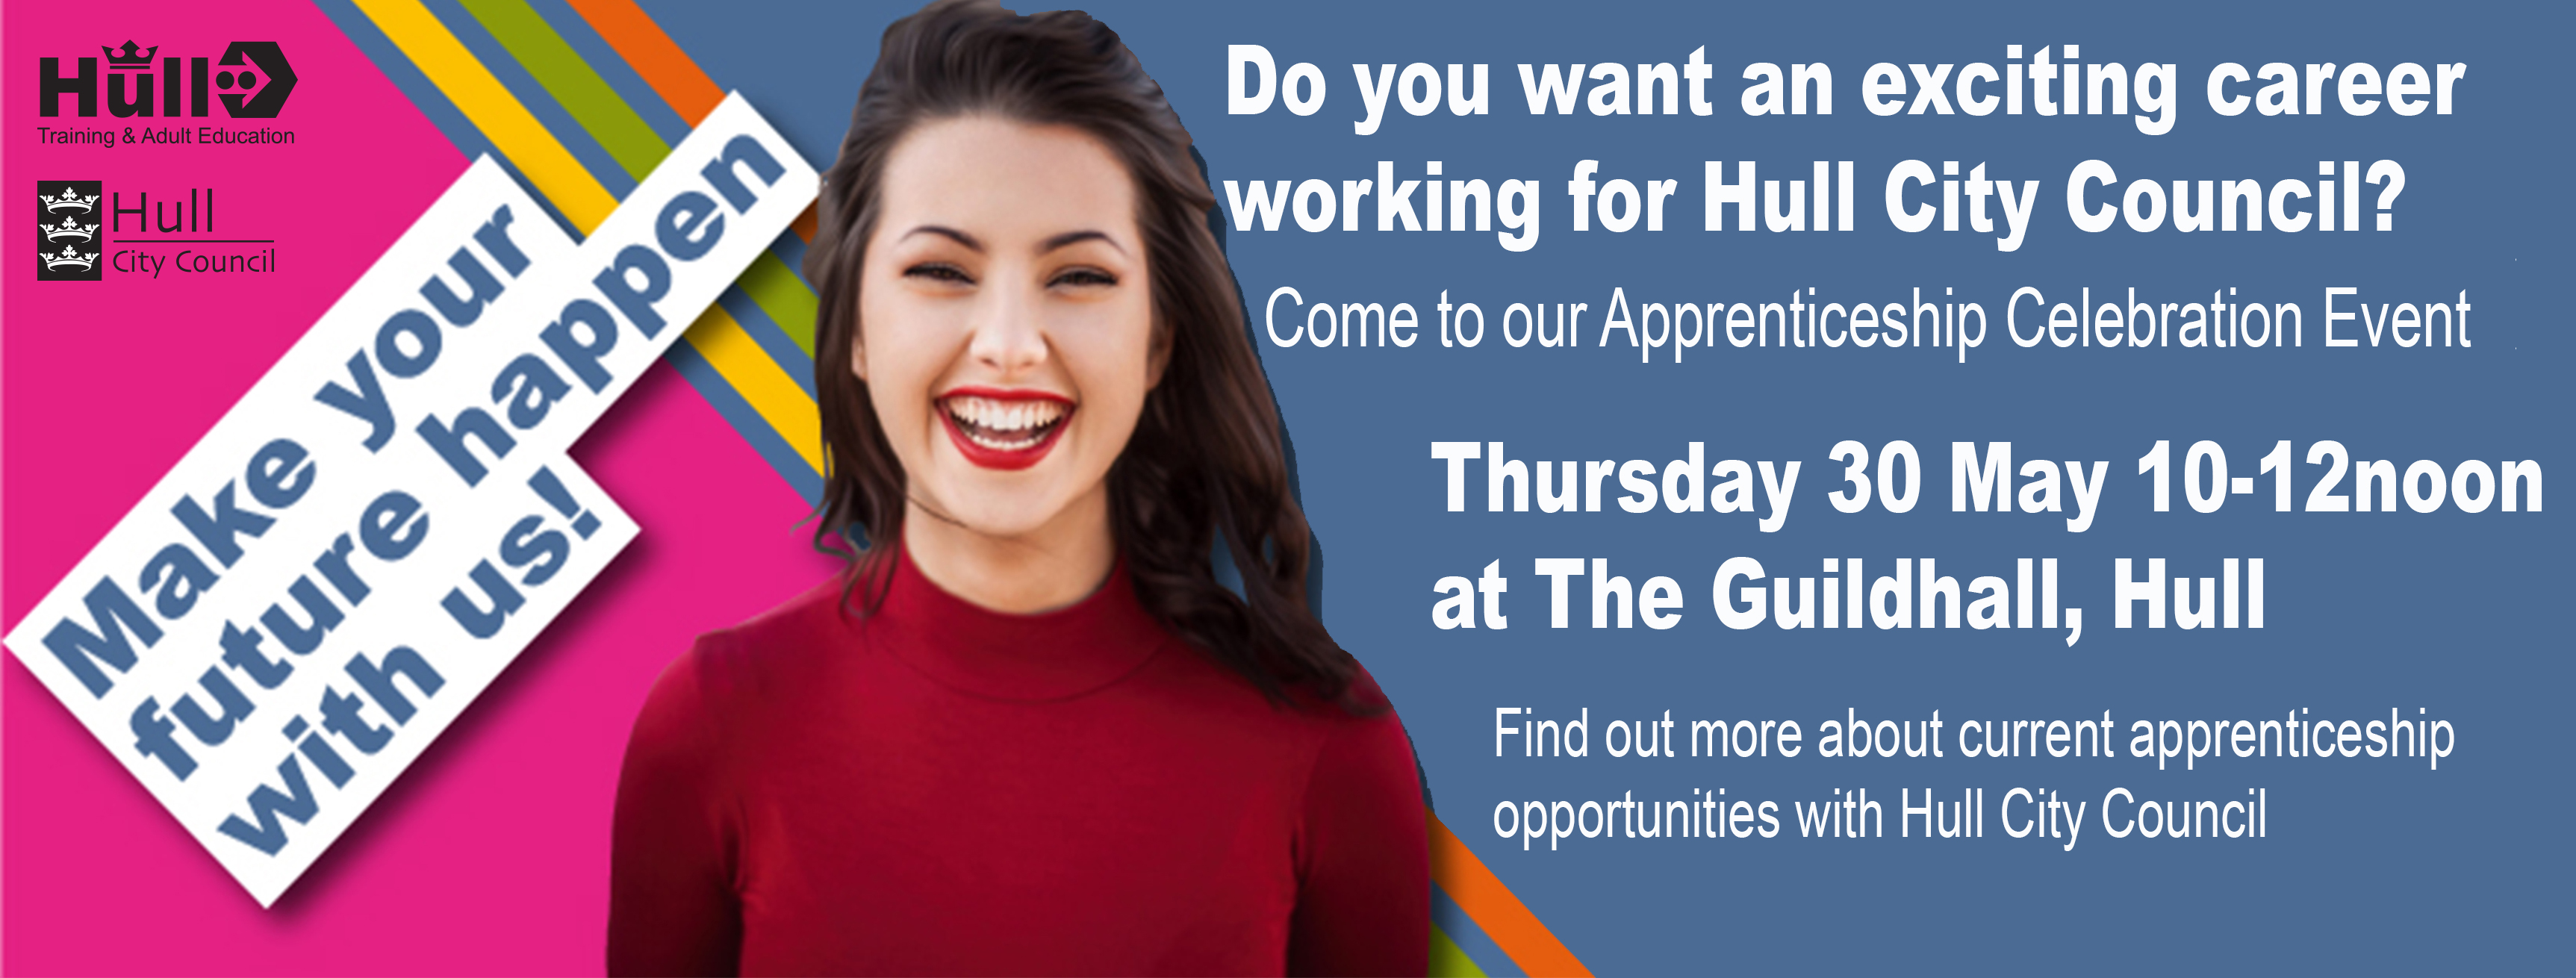 Young woman promoting apprenticeship event at the guildhall Hull on Thursday 1-12noon